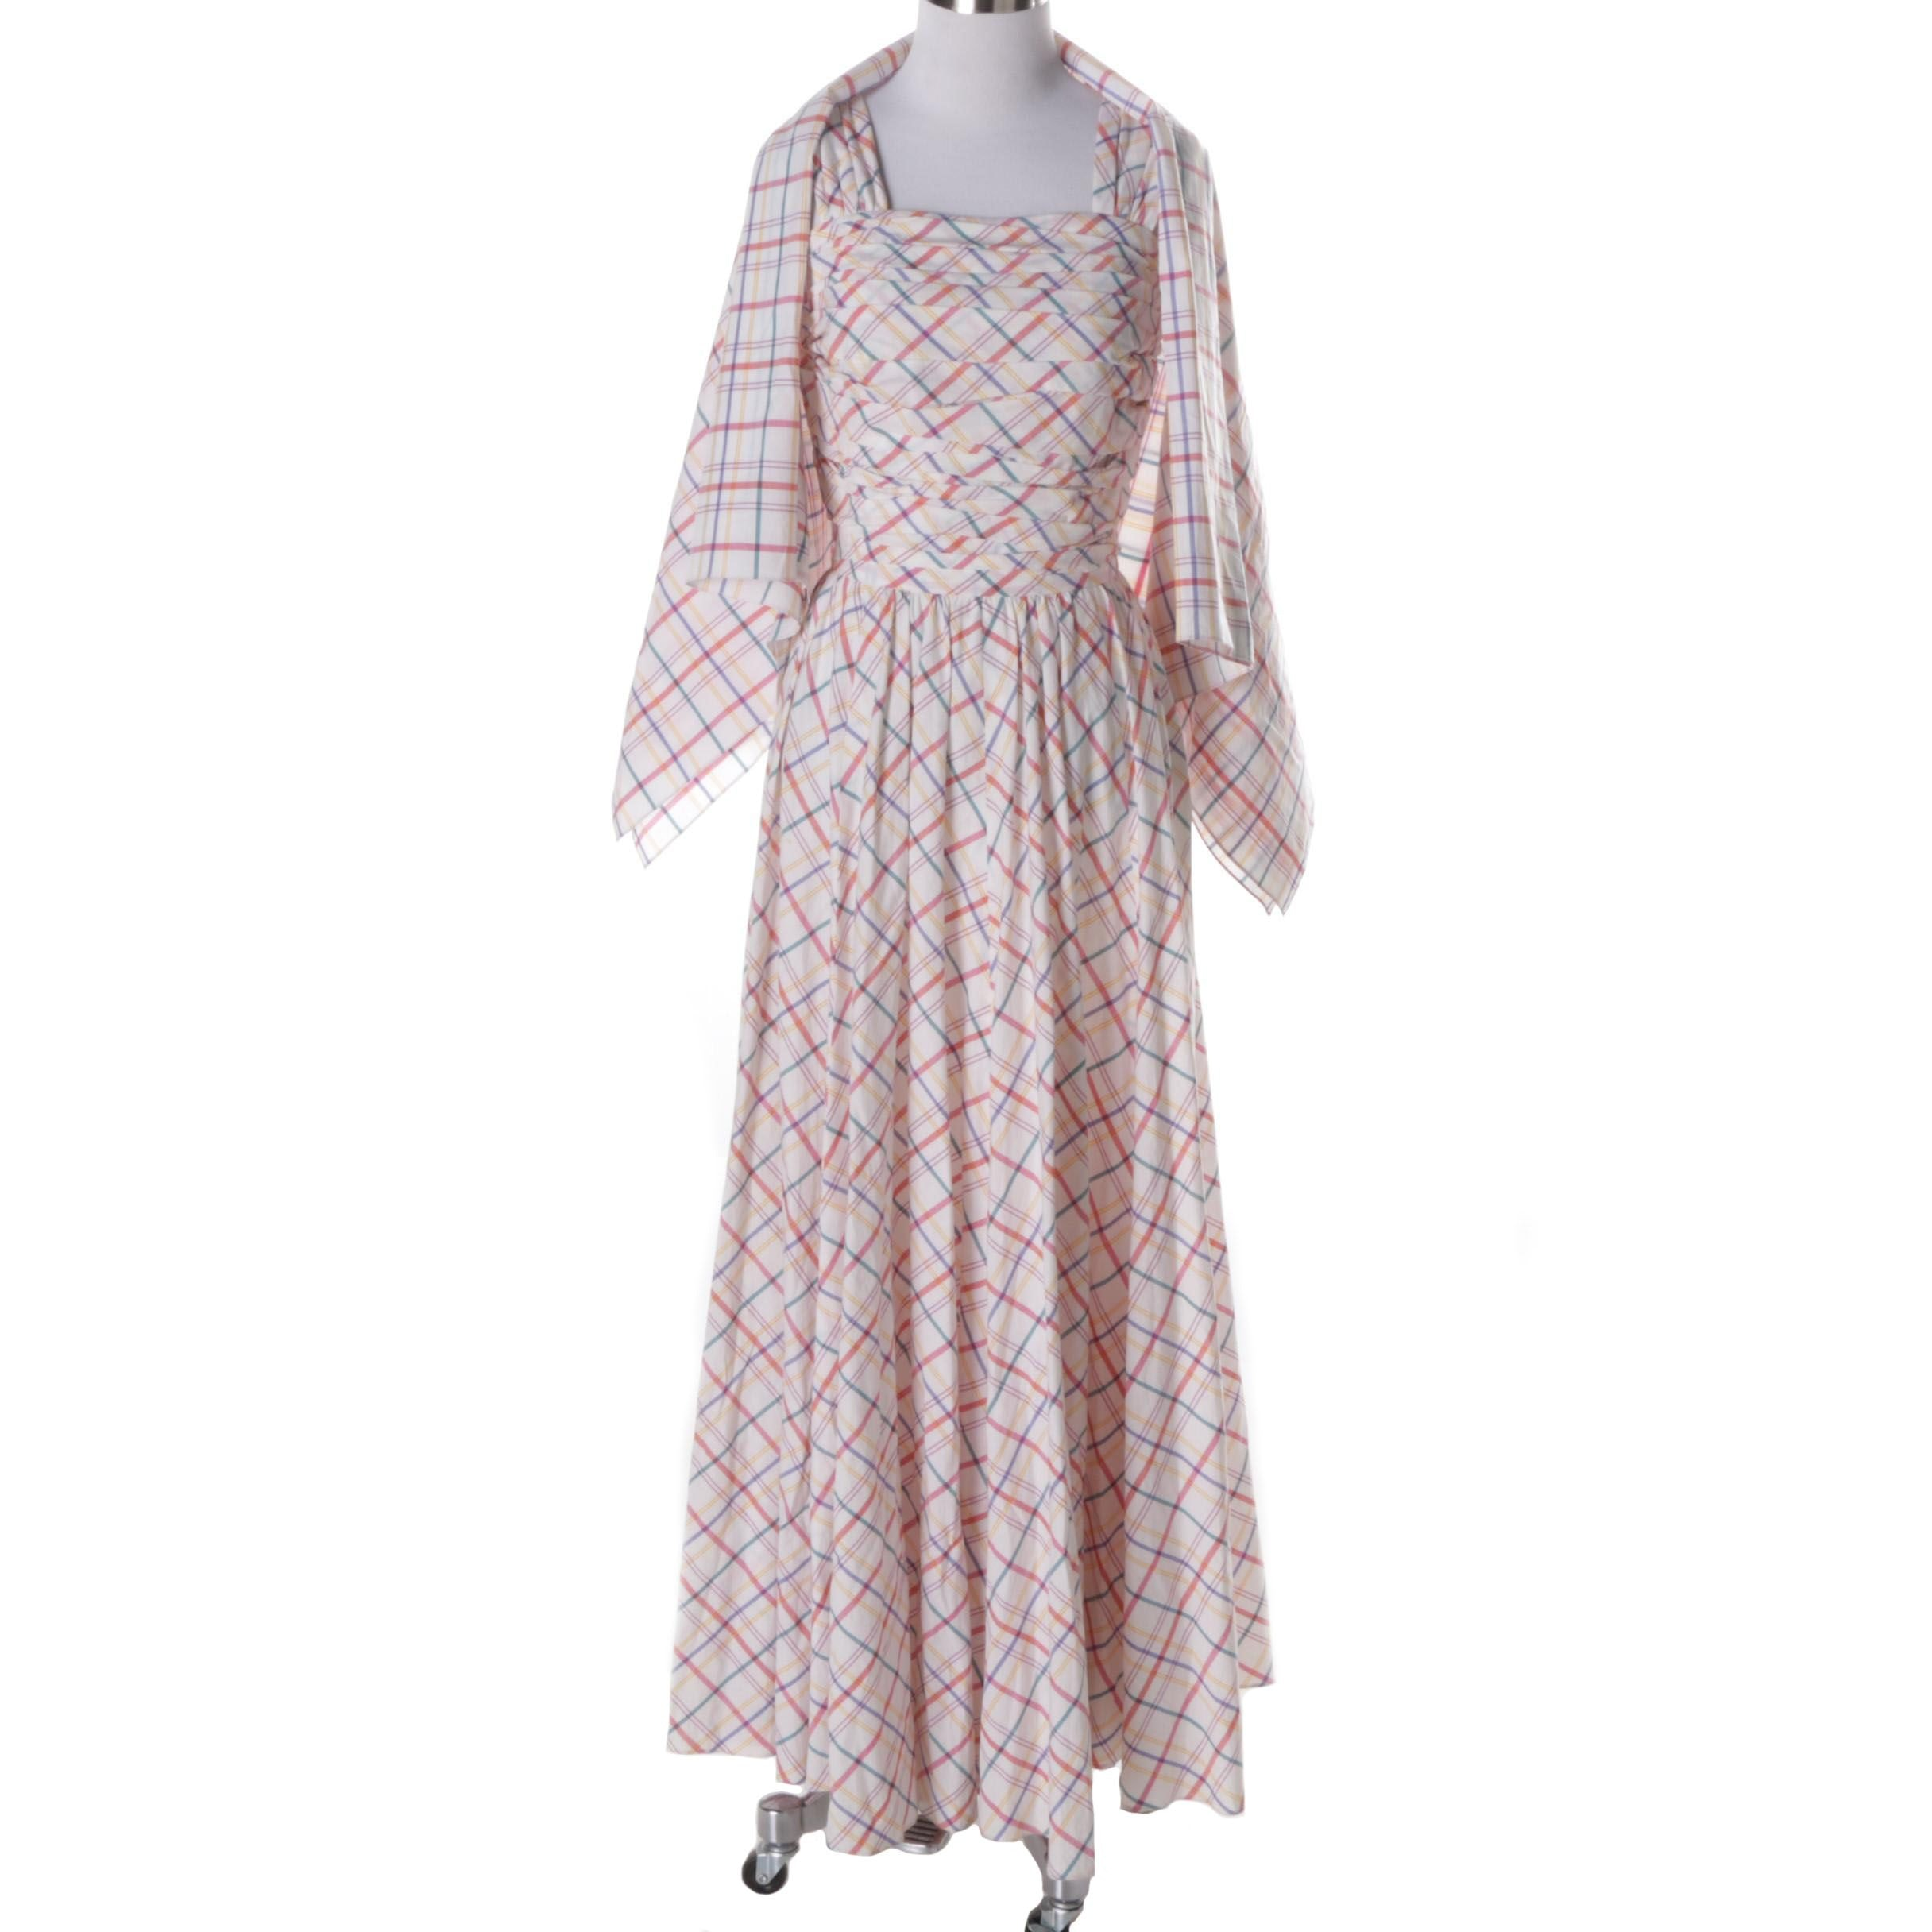 Vintage Pleated Dress and Wrap